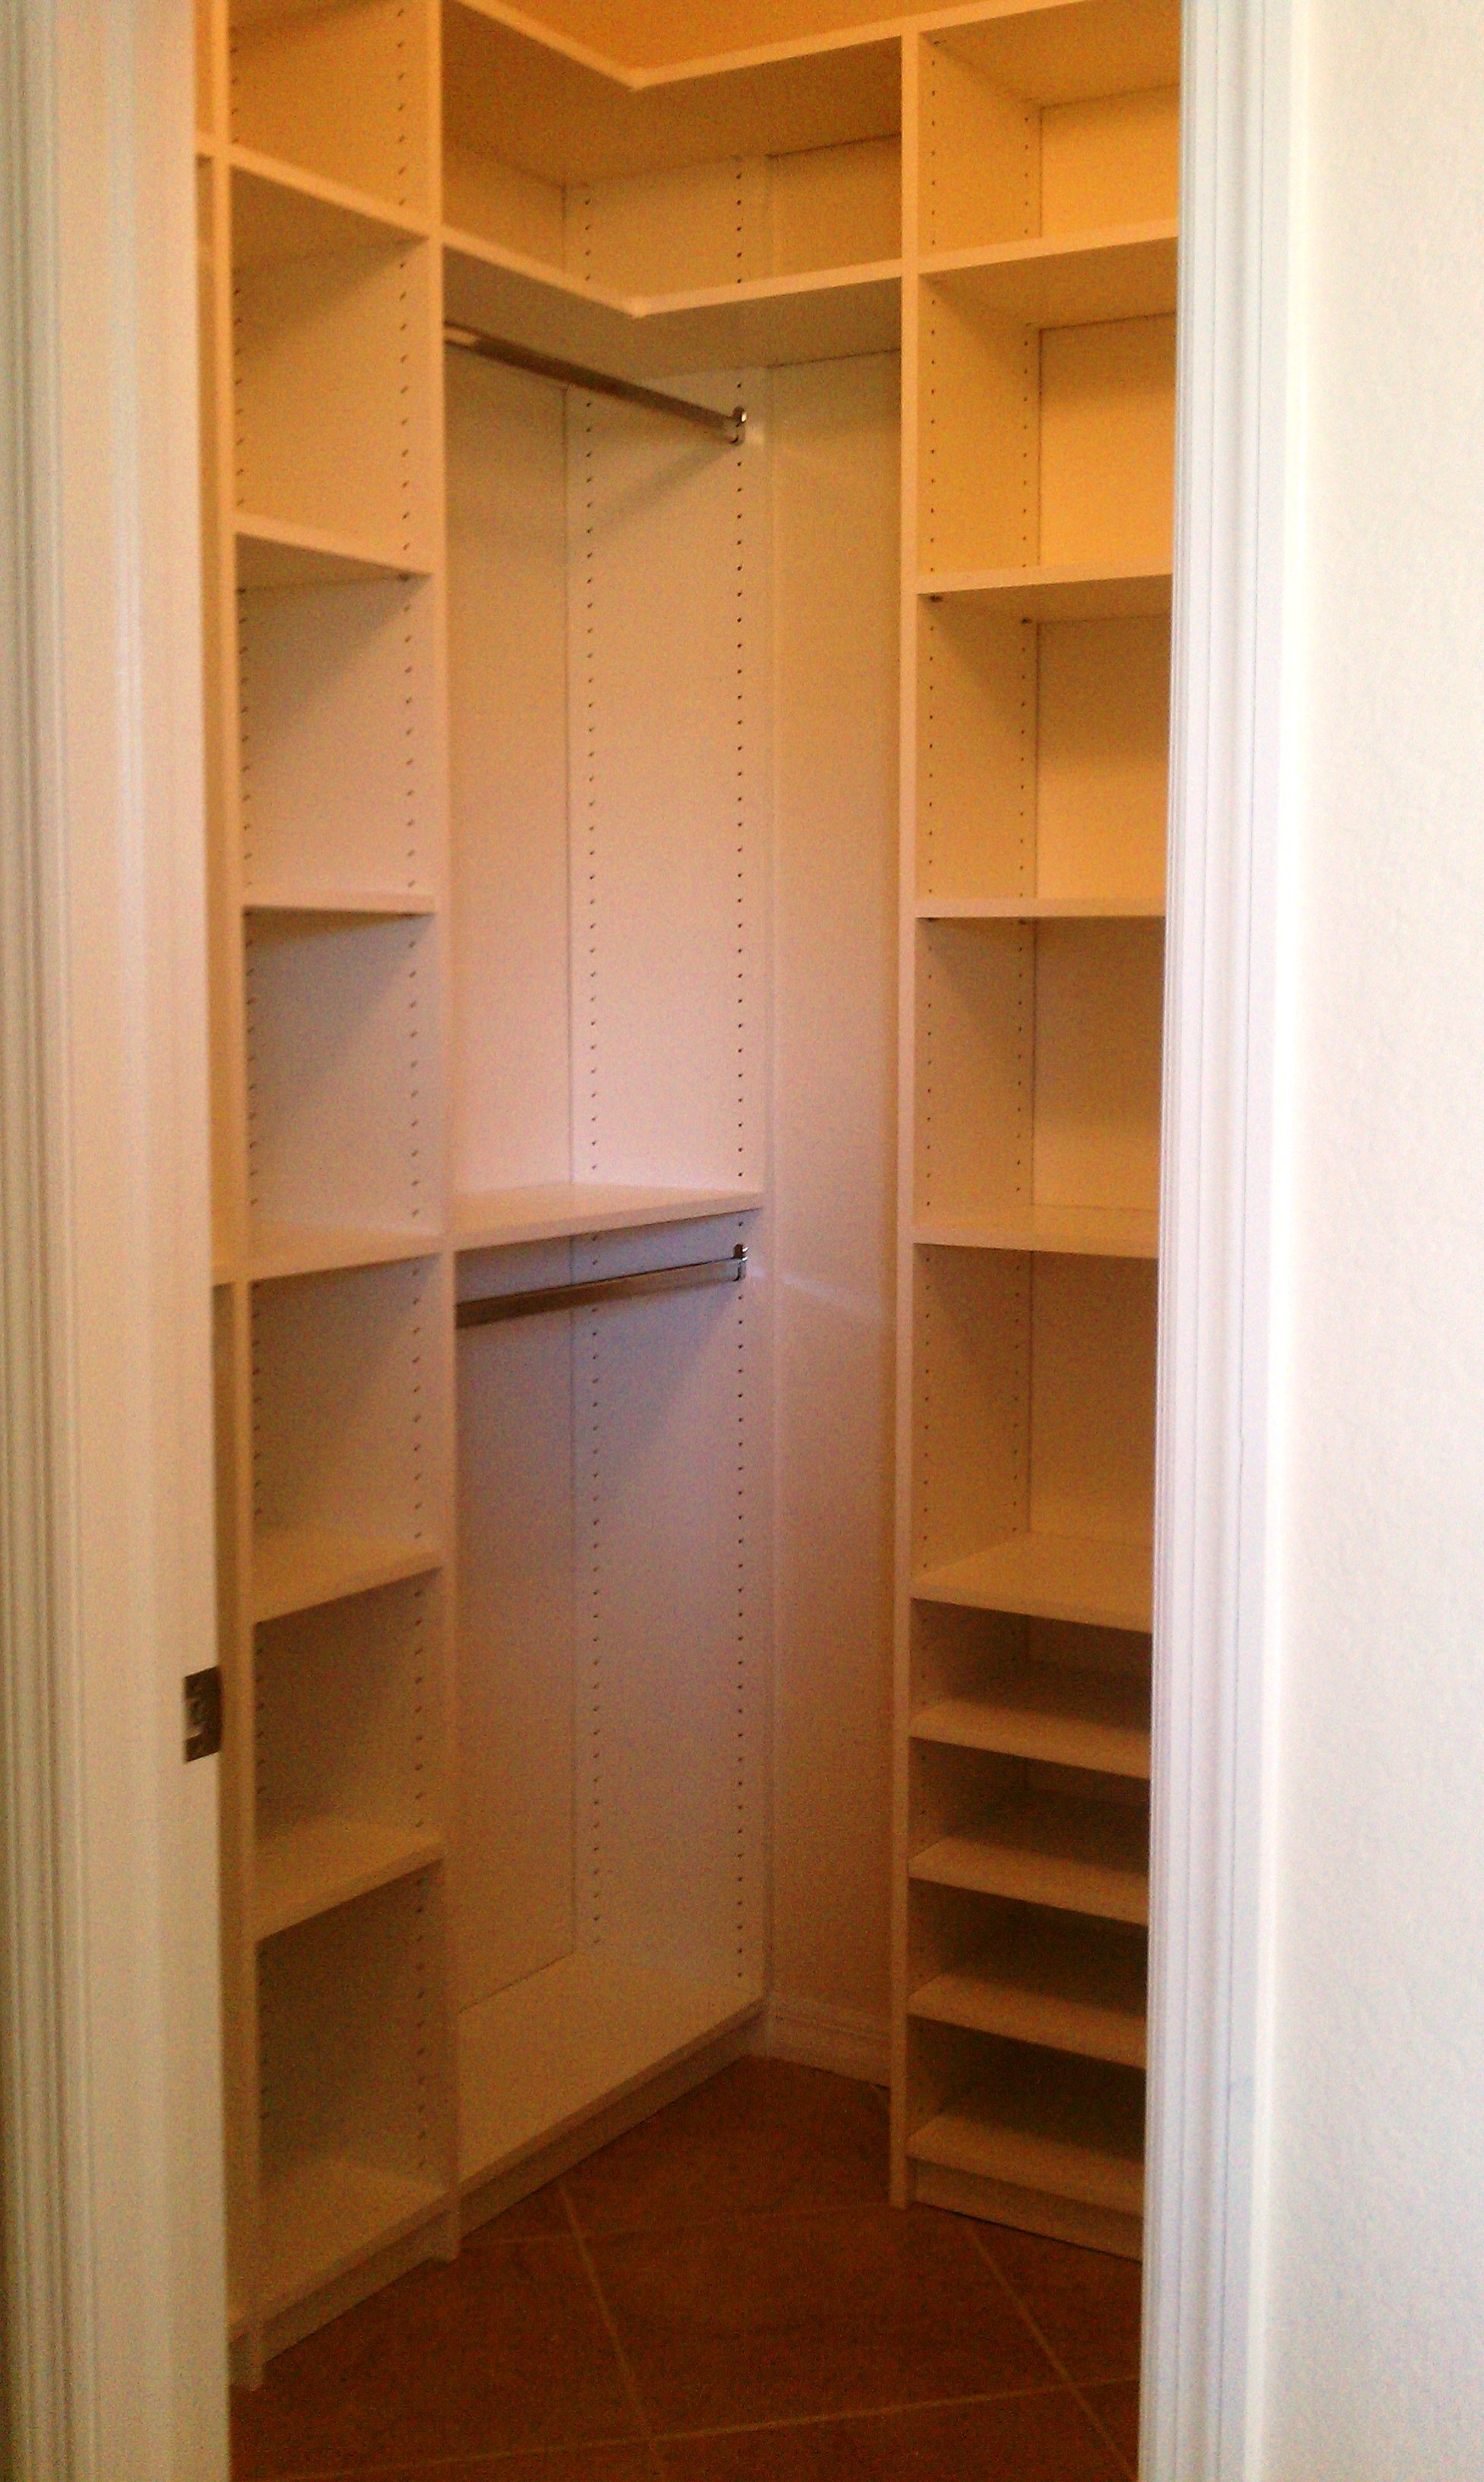 Small Walk In Closets Design   Small Closet Walk In 1. Small Walk In Closets Design   Small Closet Walk In 1   Home